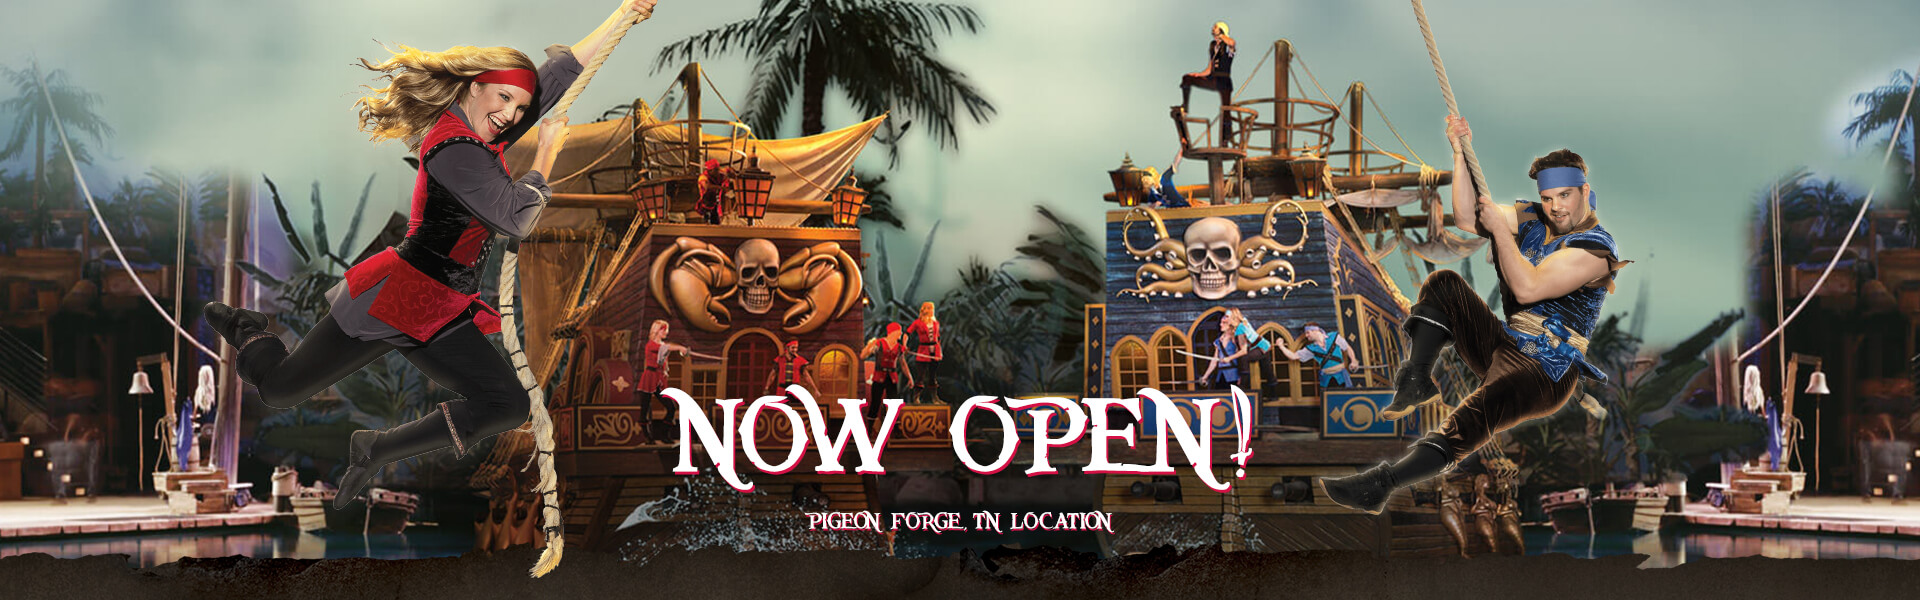 Pirates Voyage Dinner & Show Pigeon Forge, TN Now open